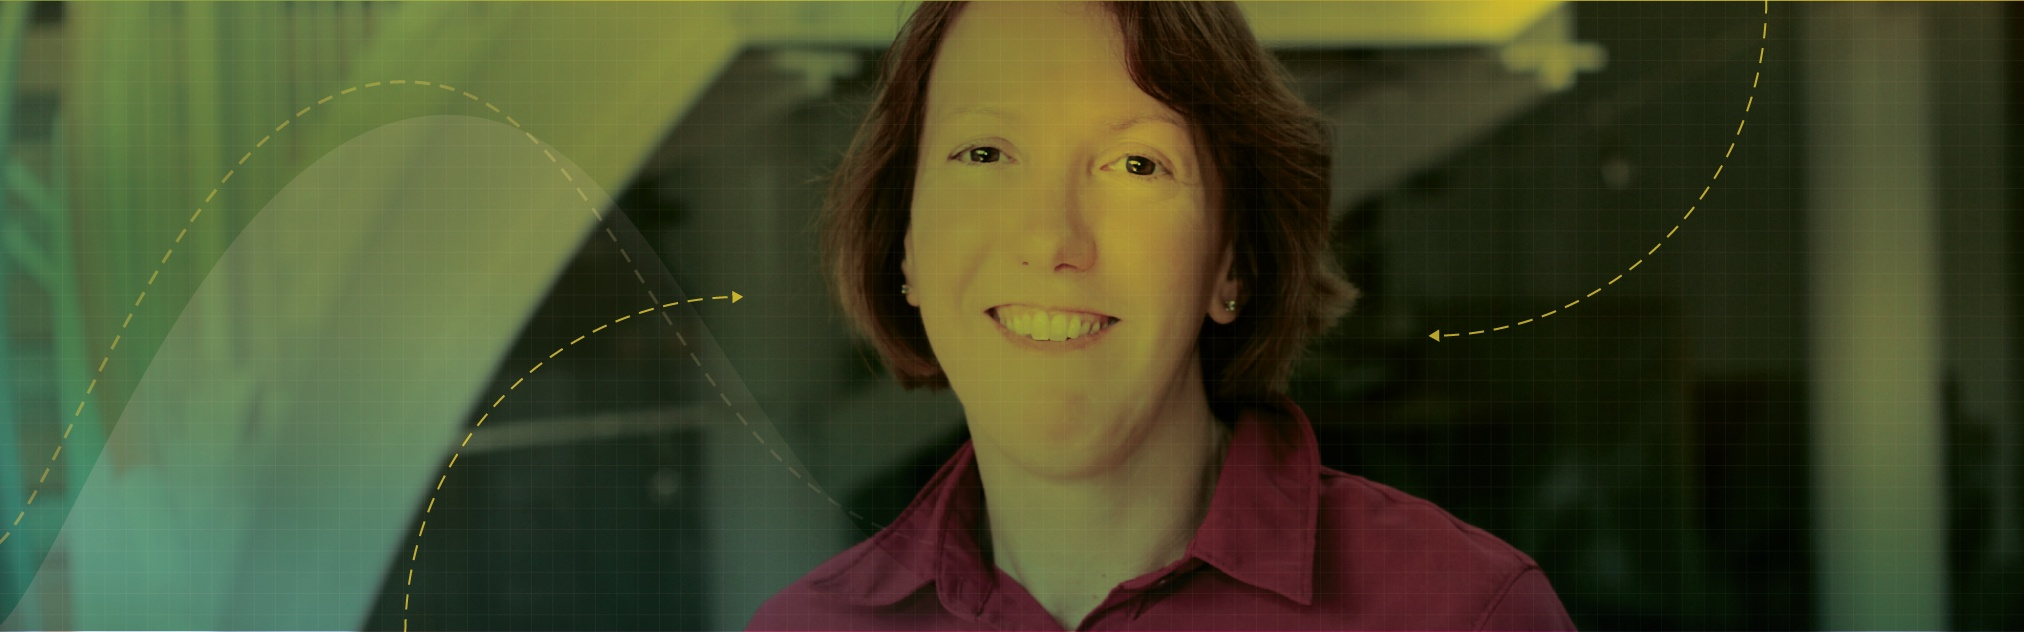 Illustration photo of Associate Professor Anne Parmigiani with a green and yellow cover overlay, grig overlay, and some arrows